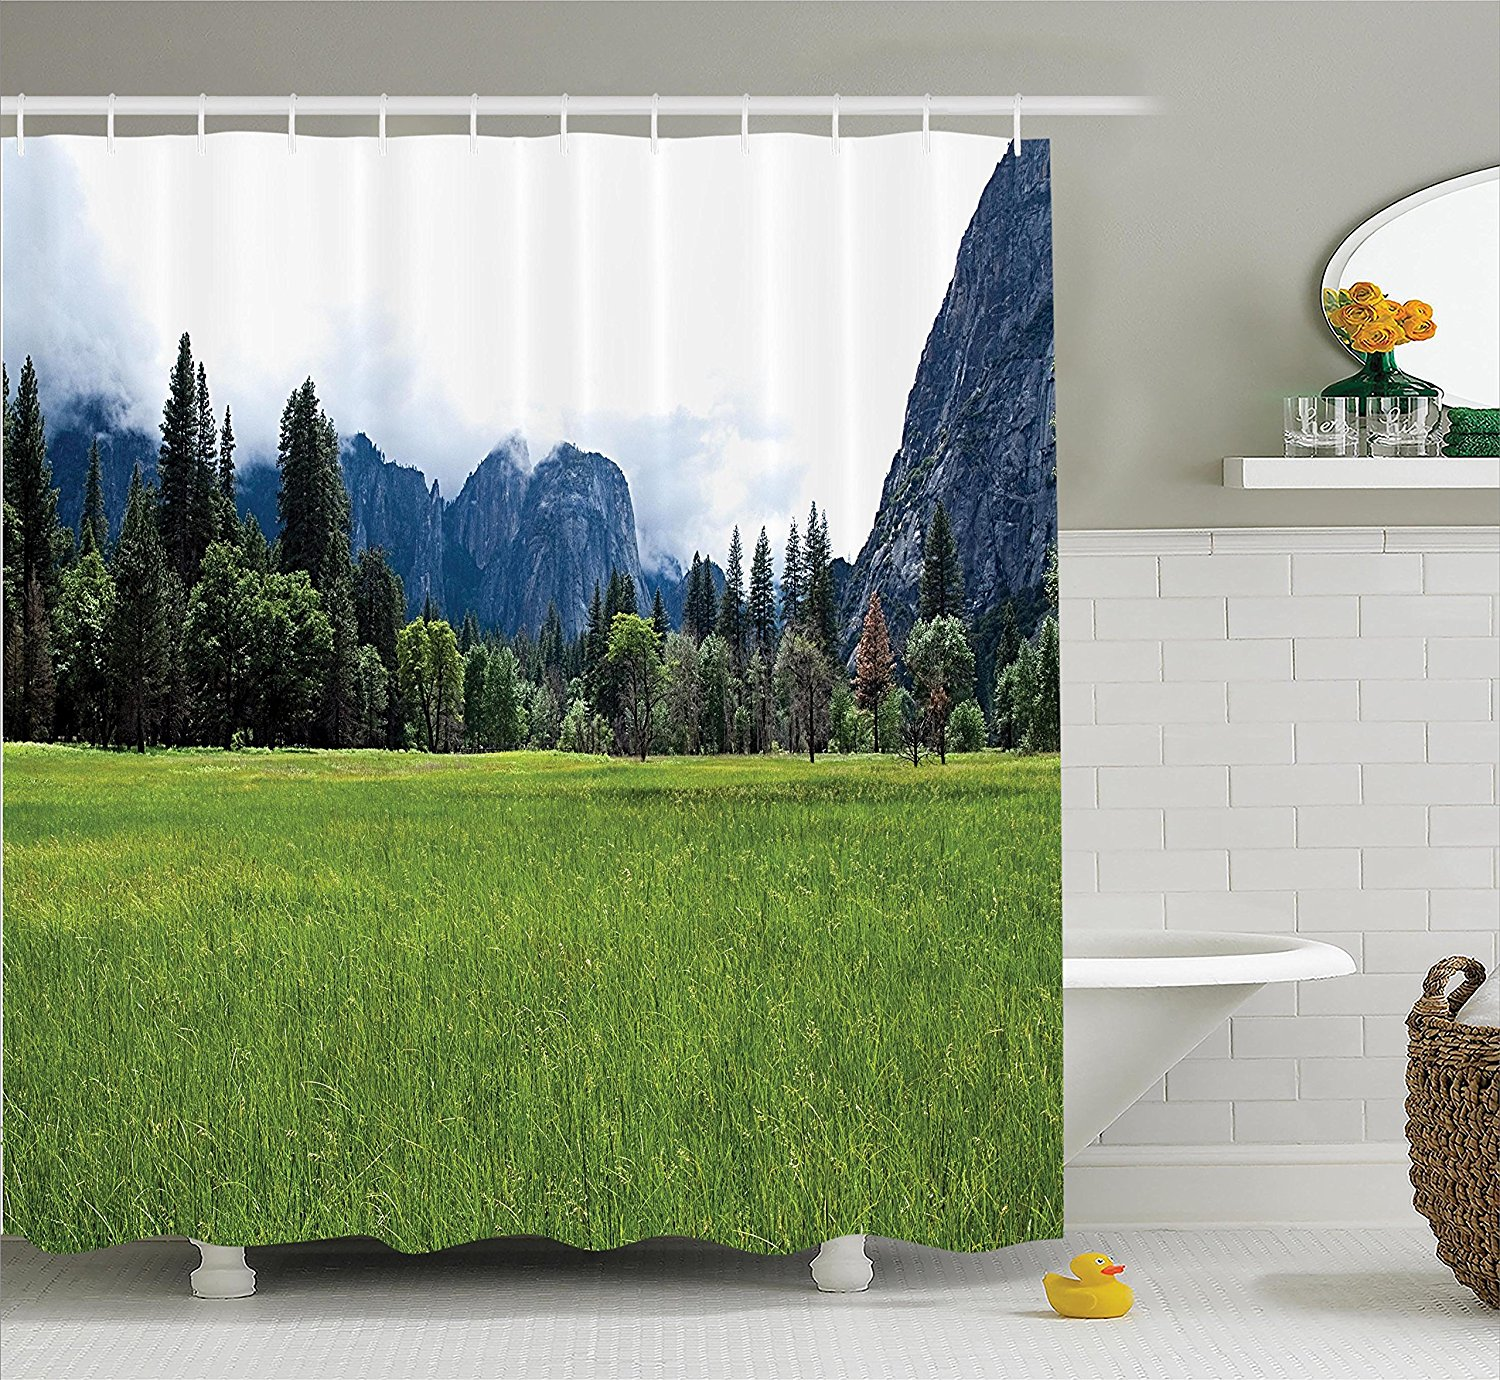 Ambesonne Apartment Decor Collection, Lushgreen Meadow in the Yosemite Valley With Trees Forest Mountain Cloudy Day Photo, Polyester Fabric Bathroom Shower Curtain Set with Hooks, Green Grey